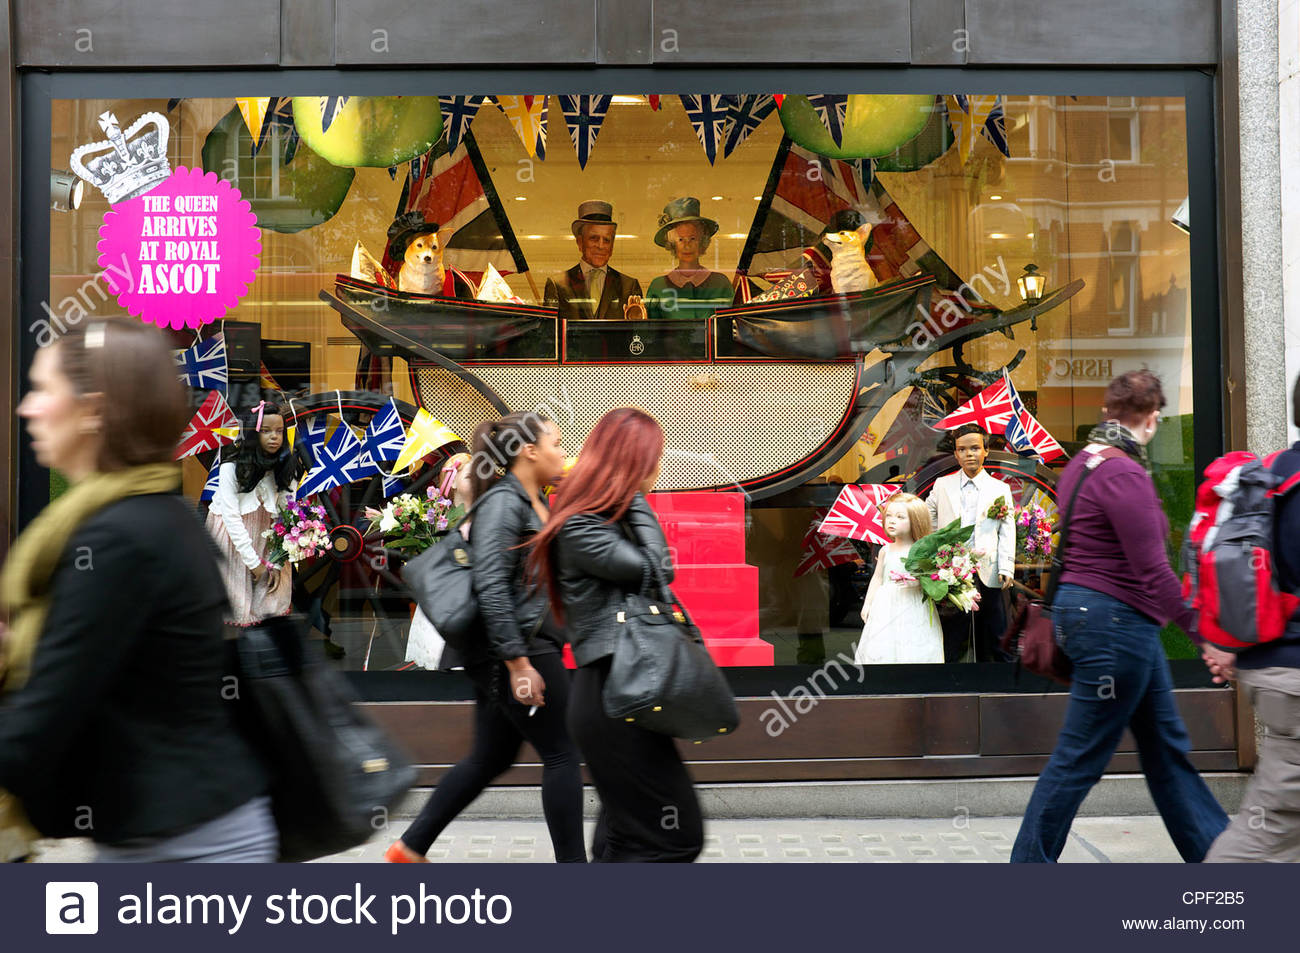 'The Queen Arrives at Ascot' shop window display in the Selfridges store, Oxford Street, London, May 2012. Stock Photo